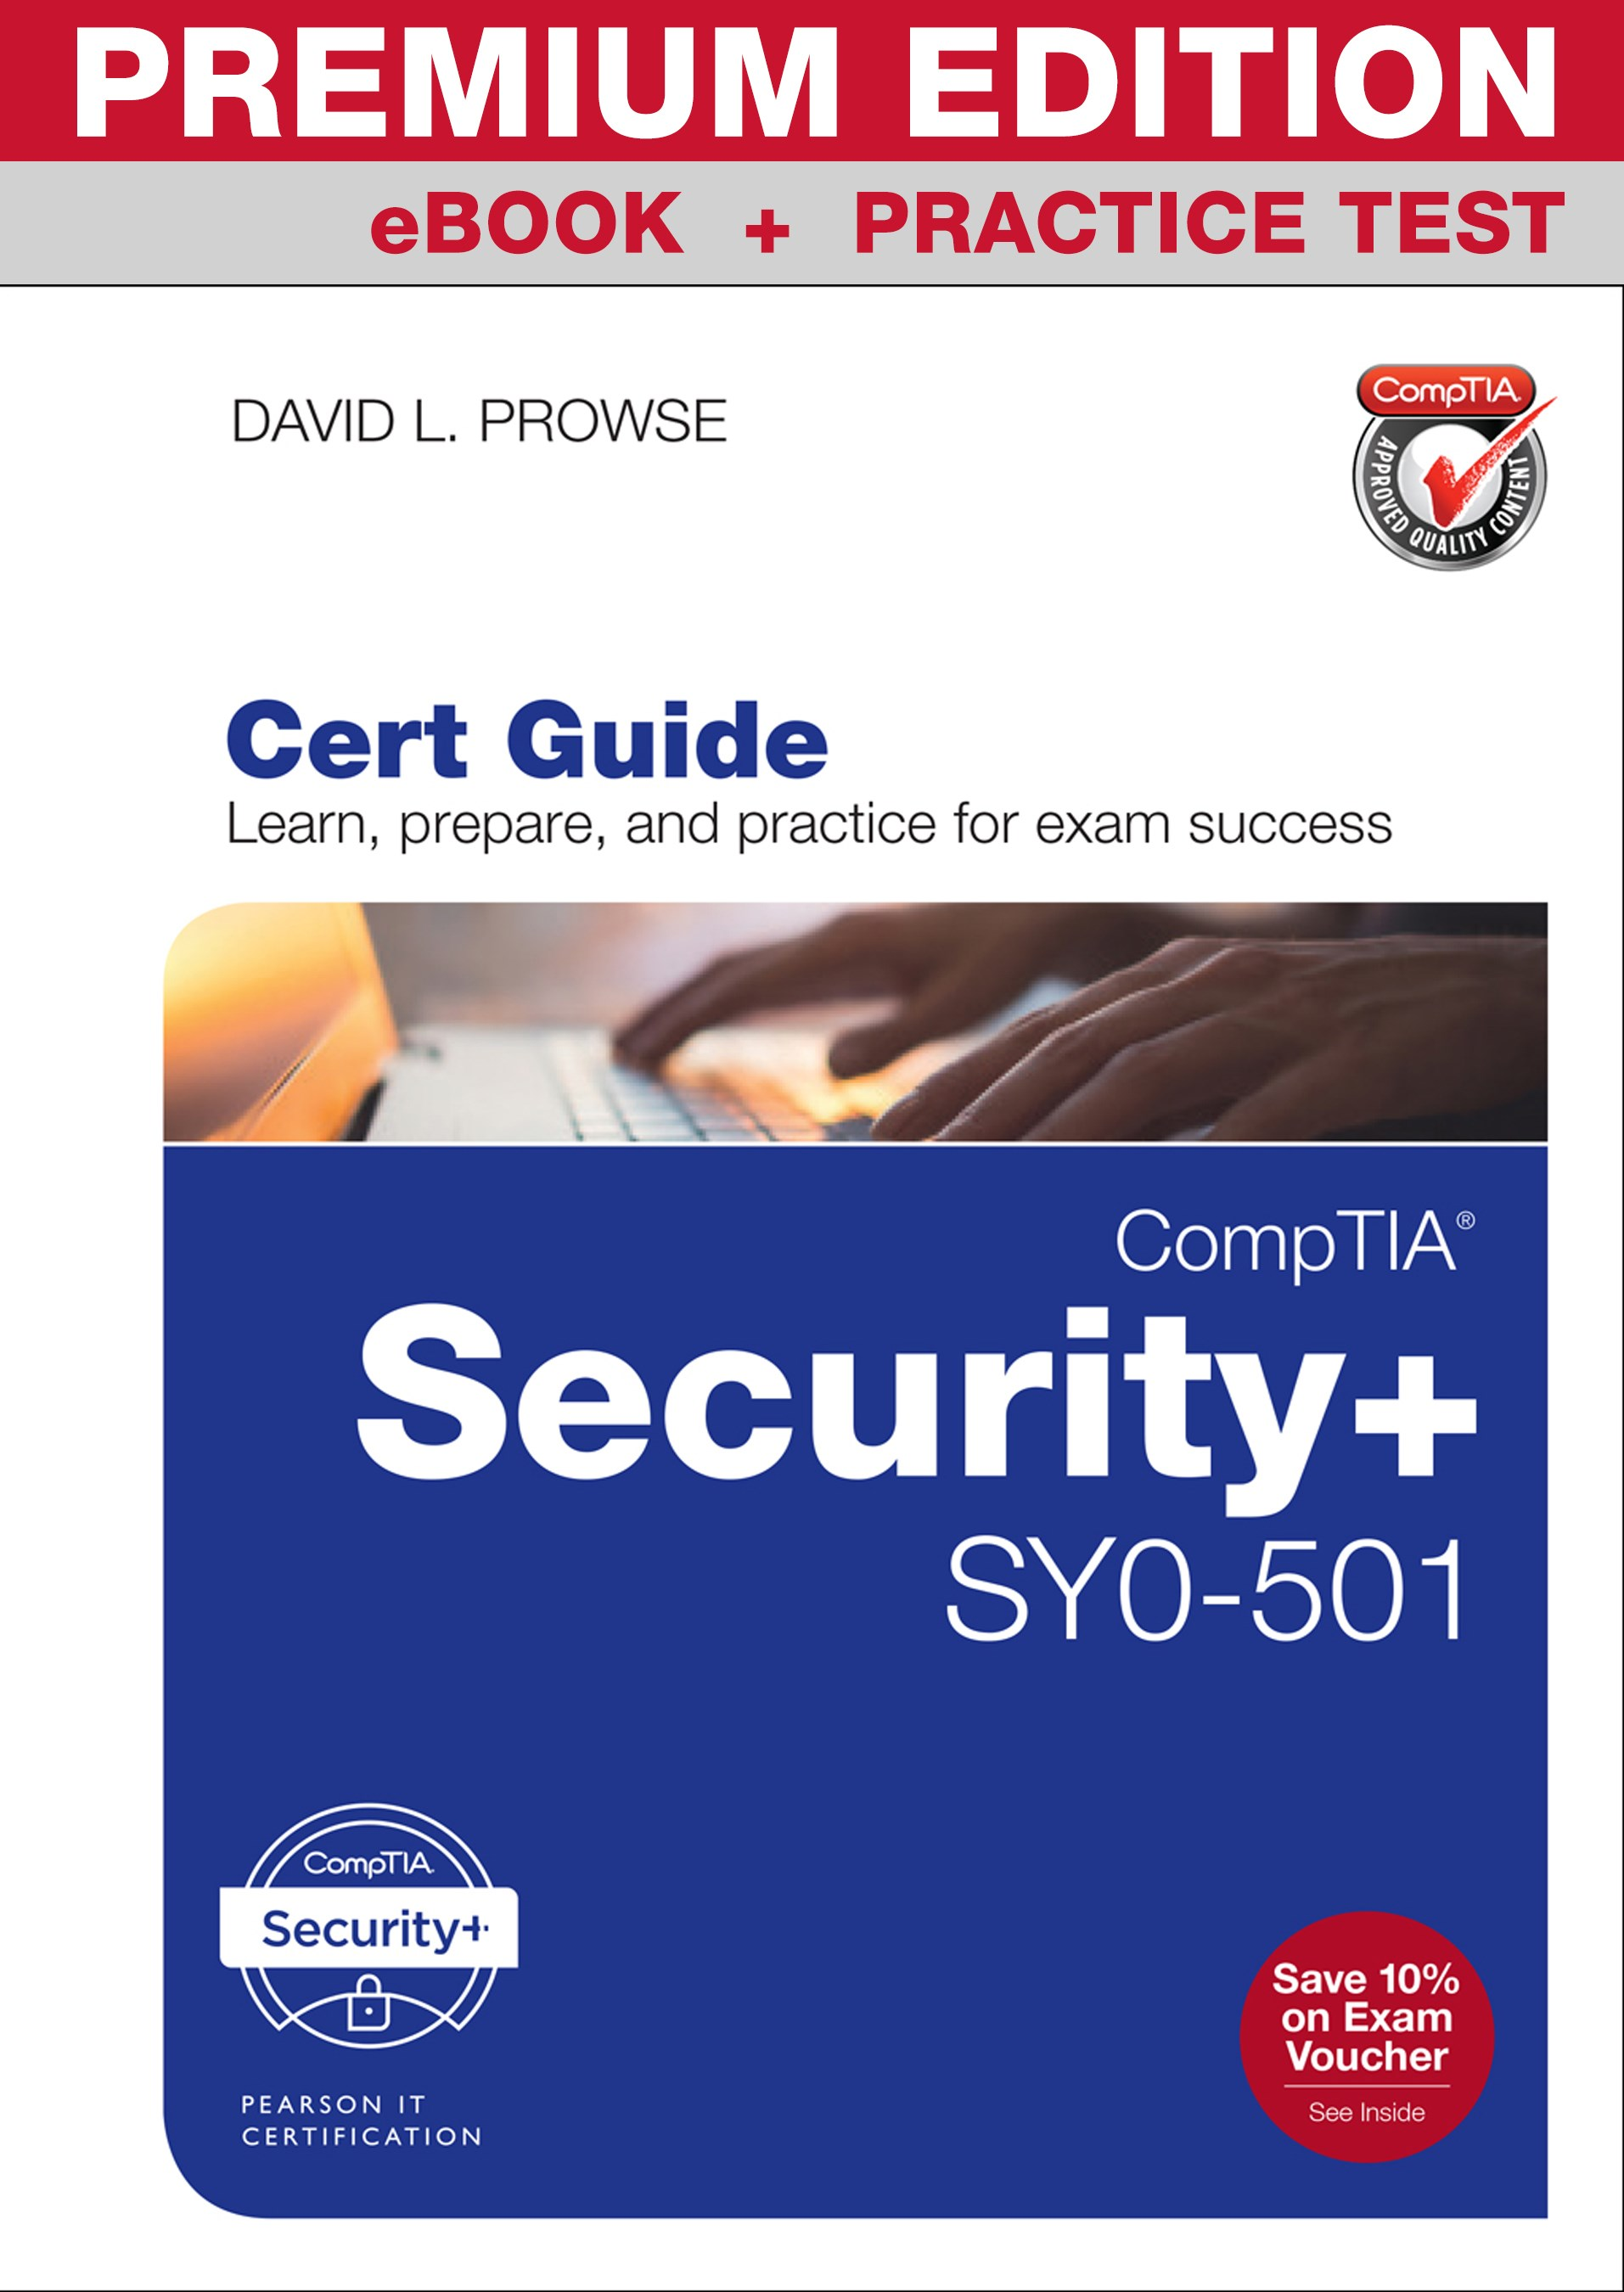 CompTIA Security+ SY0-501 Cert Guide Premium Edition and Practice Tests